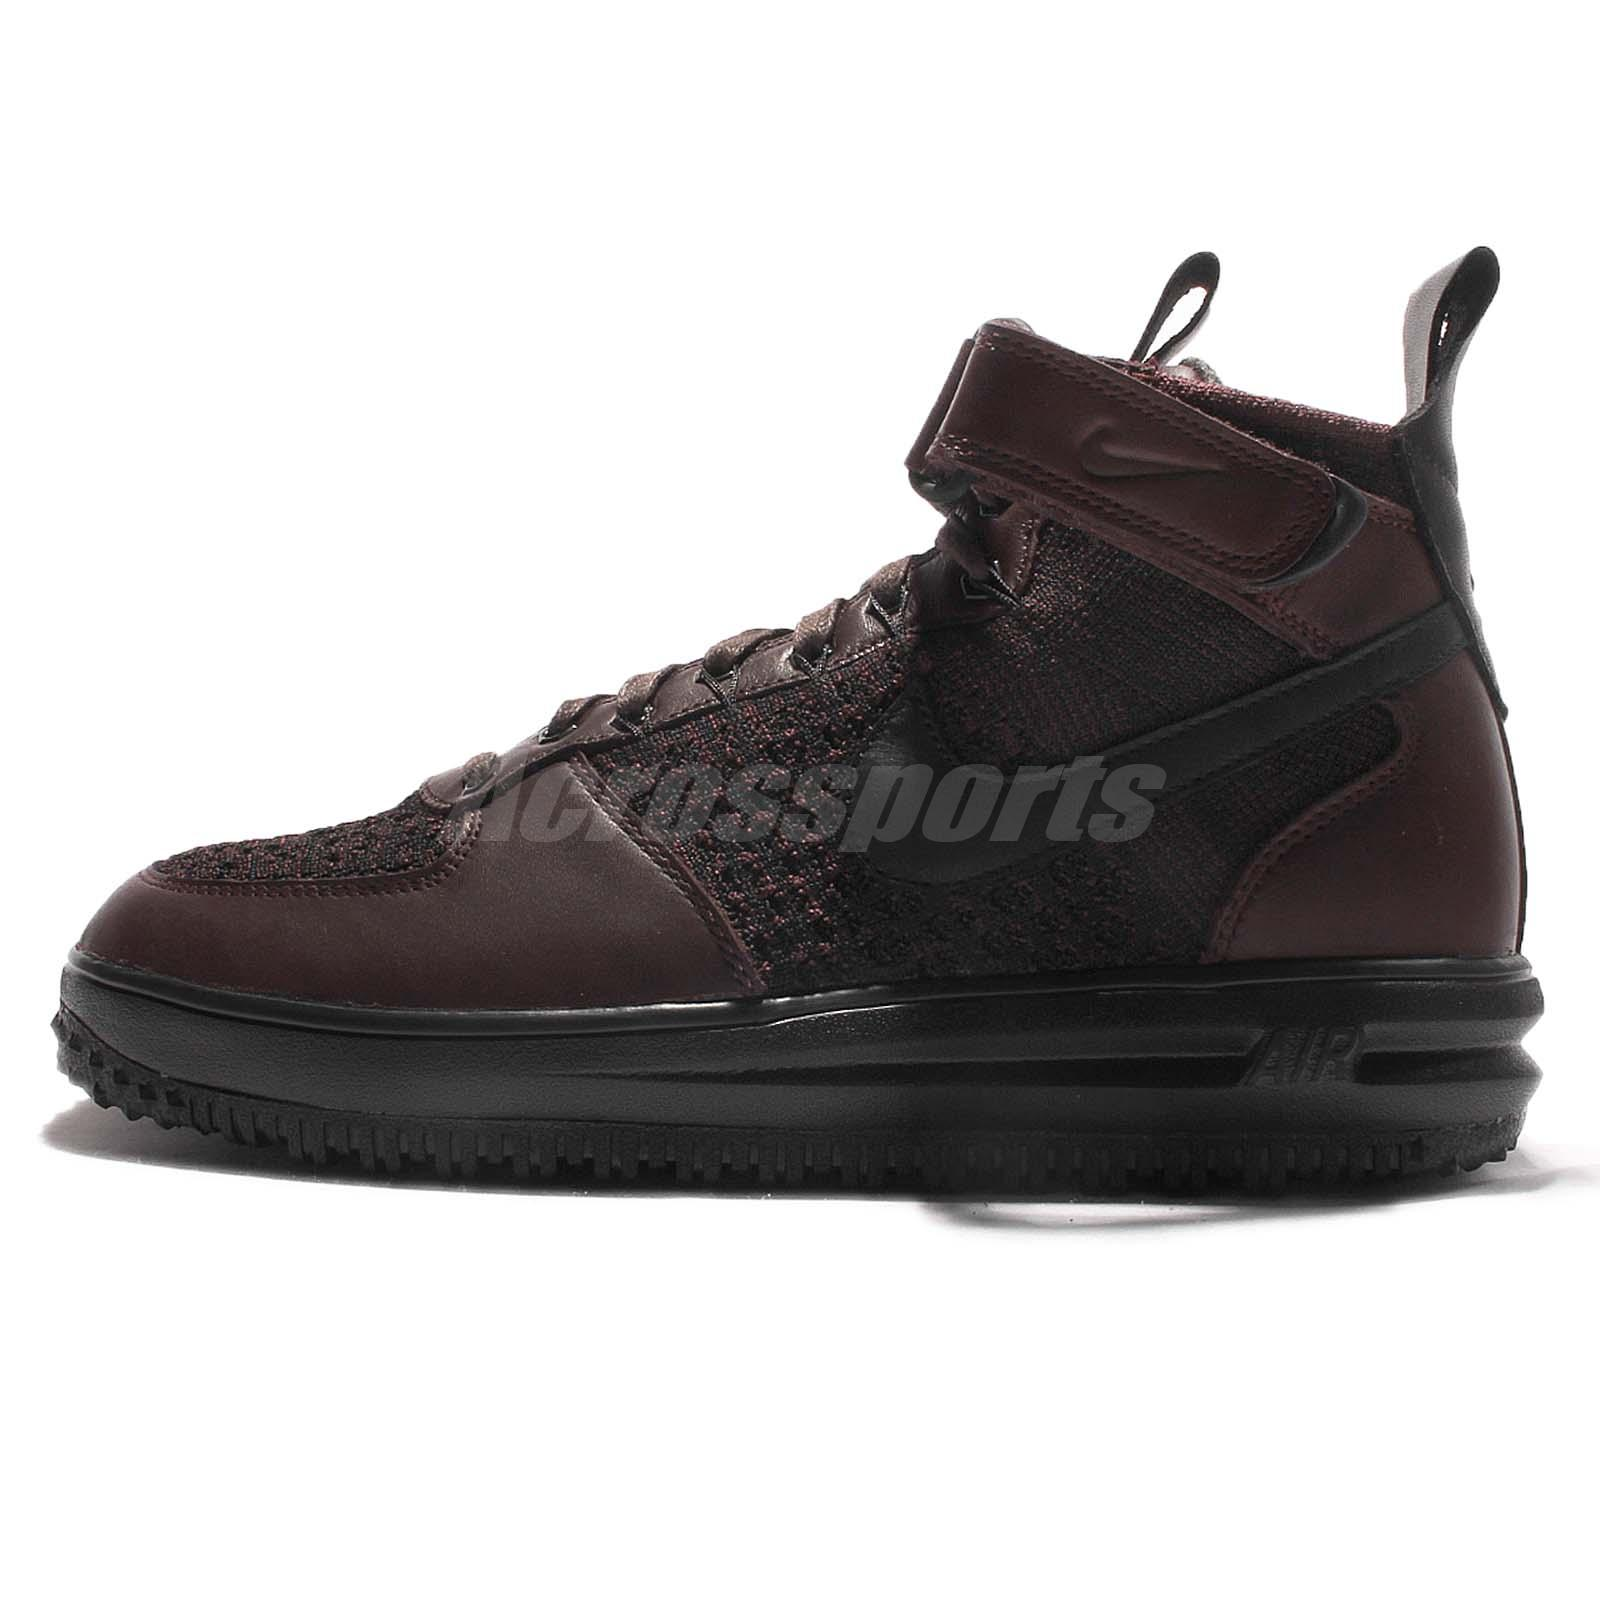 ef0c93b12 black air force 1 burgundy Nike Tiempo cleats and indoor shoes ...